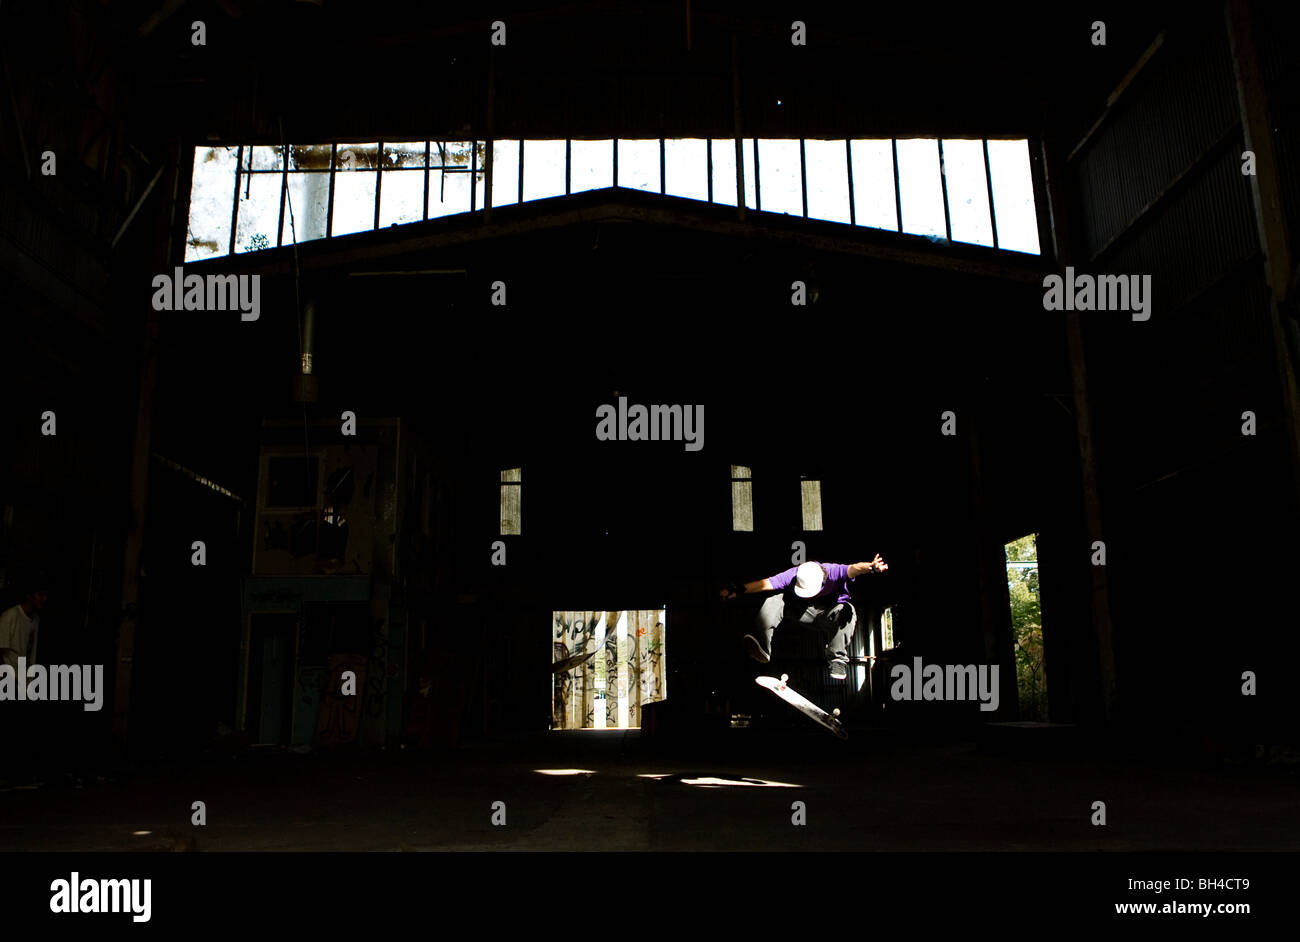 A skater performs a kick flip in an abandoned warehouse on the Central Coast, New South Wales, Australia. - Stock Image